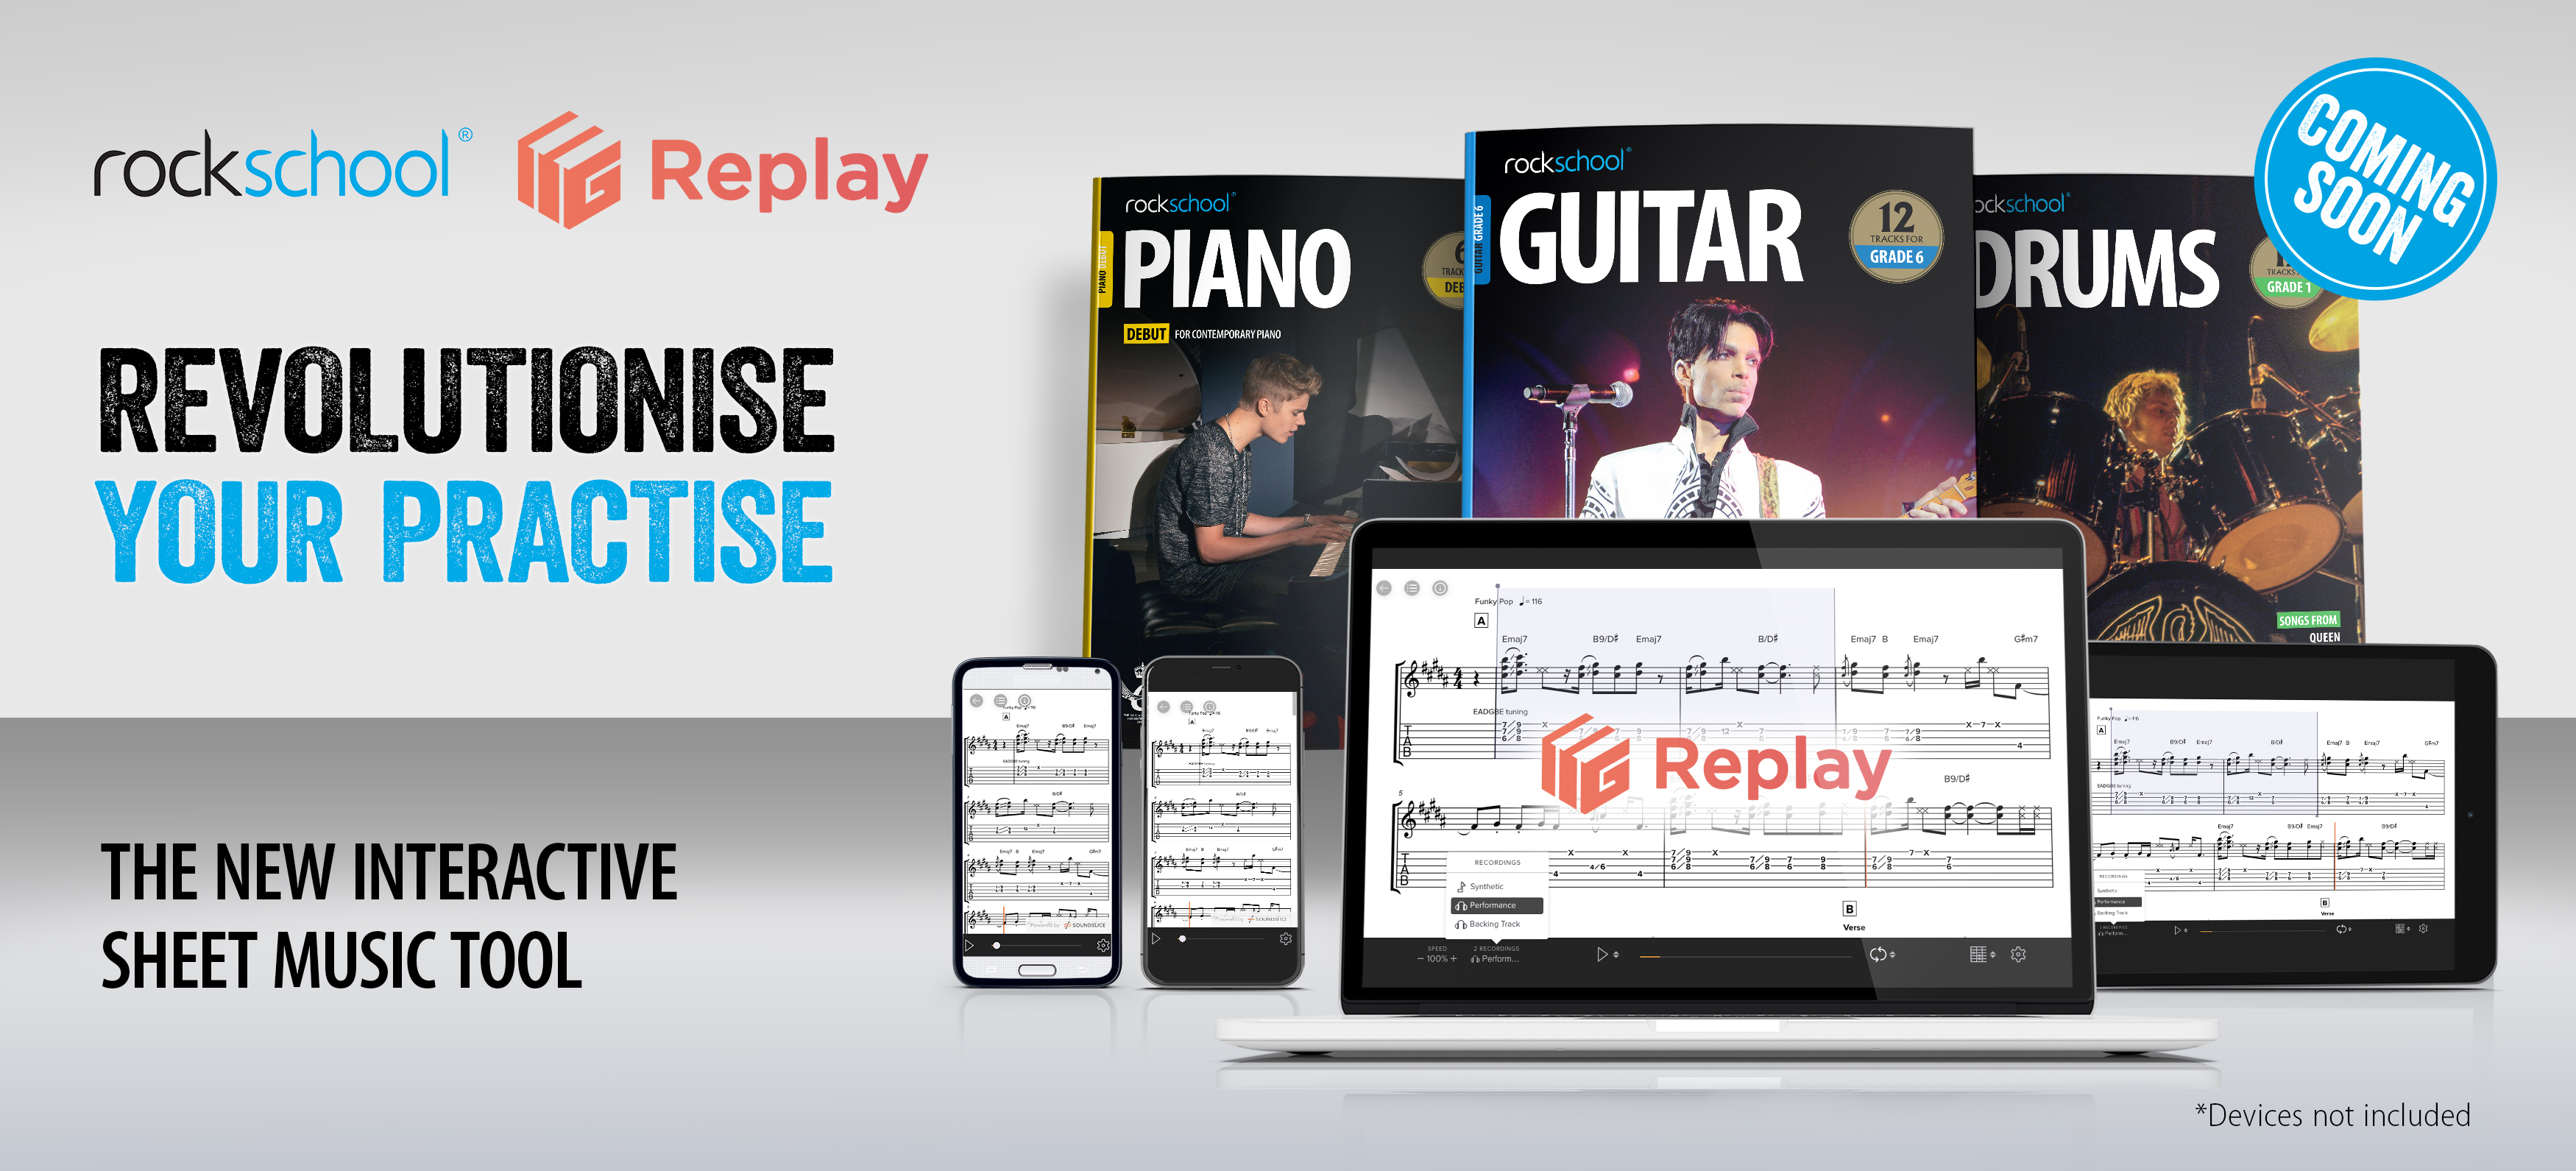 Replay: revolutionise your practise